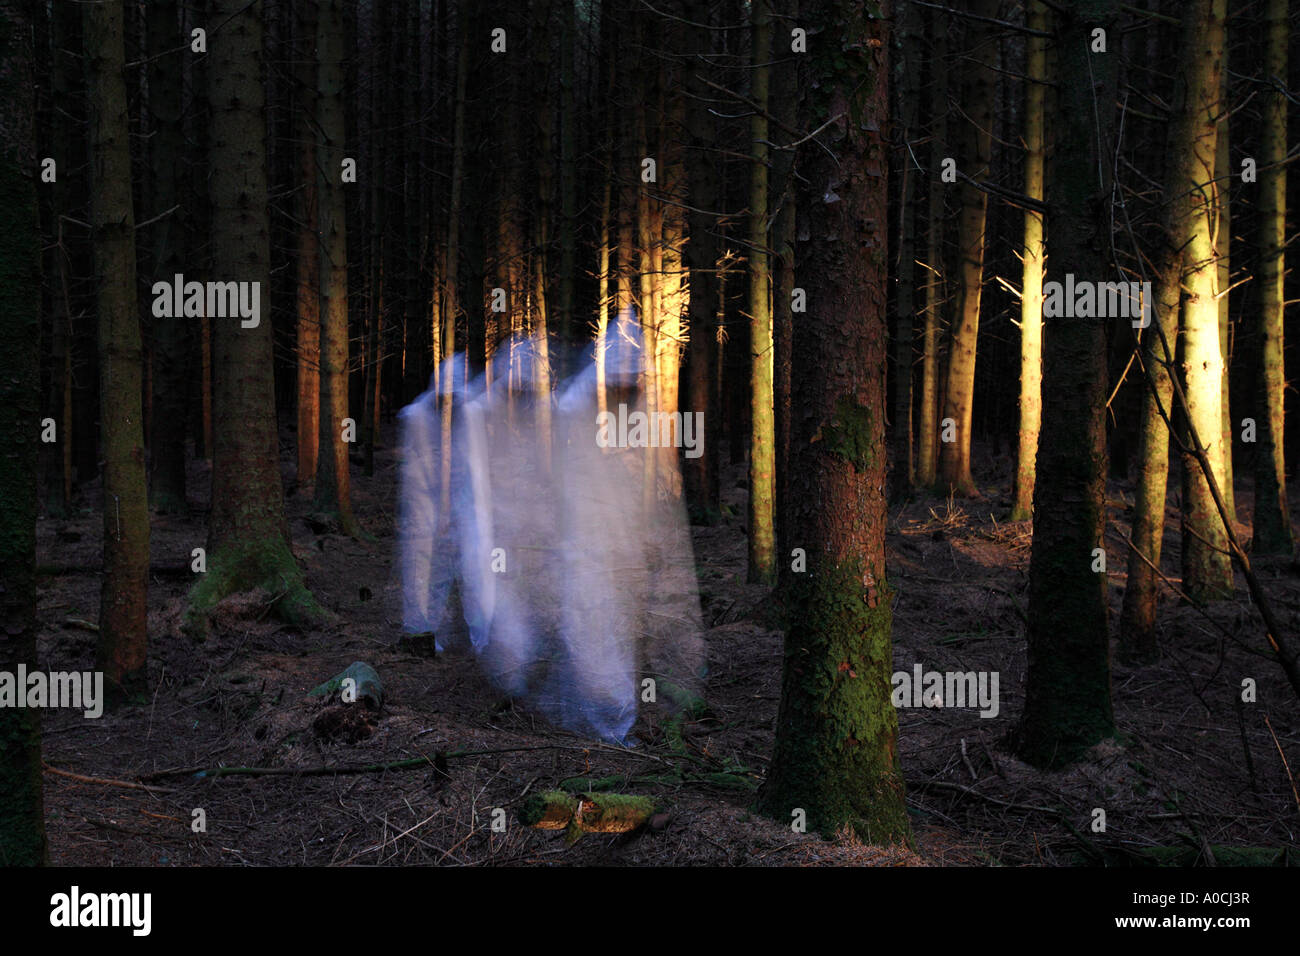 Spooky forest - Stock Image